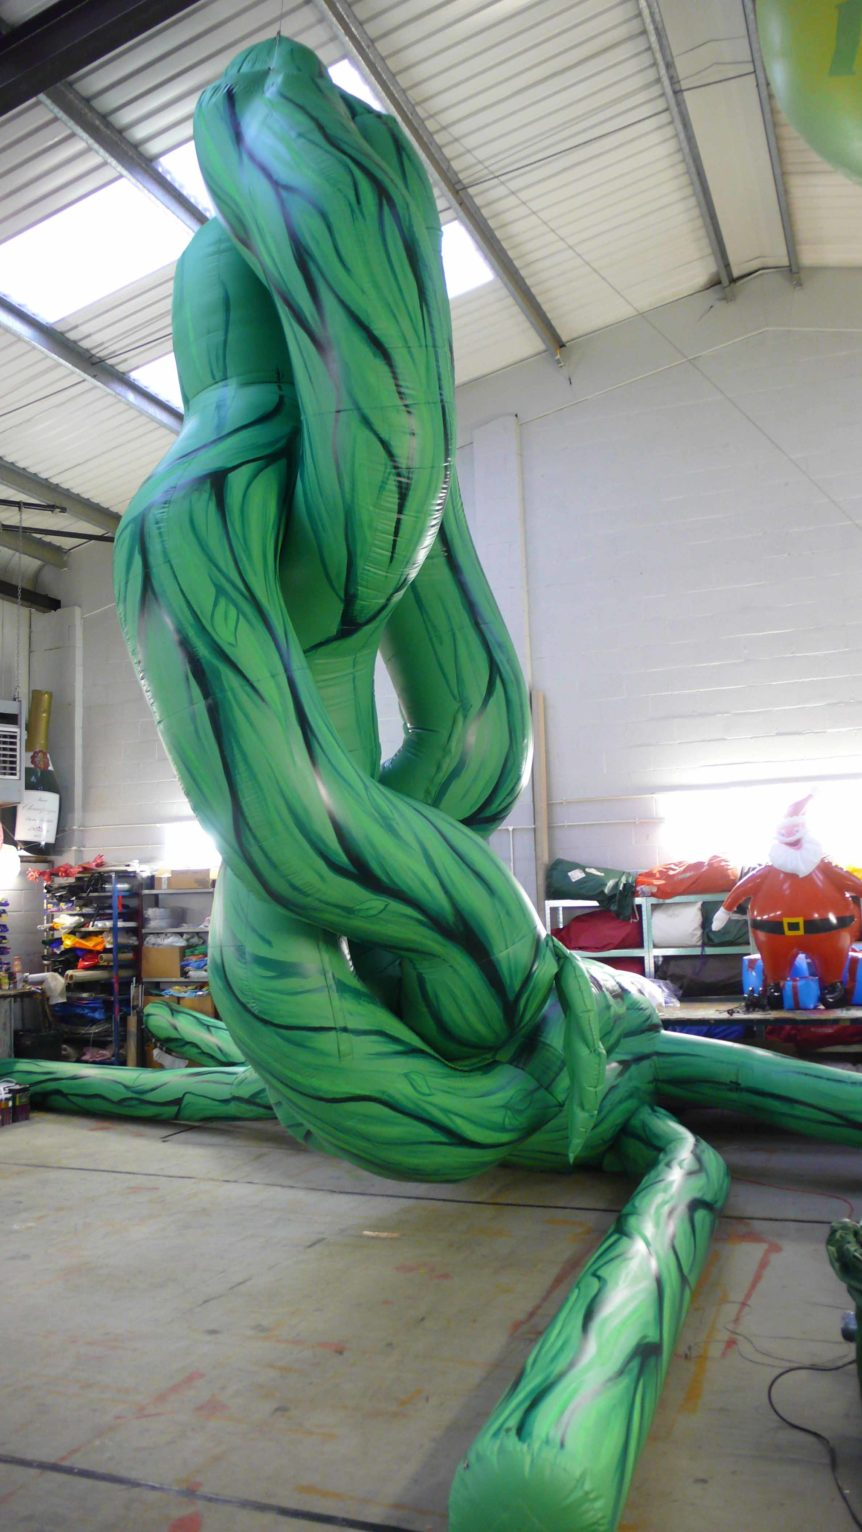 giant inflated beanstalk